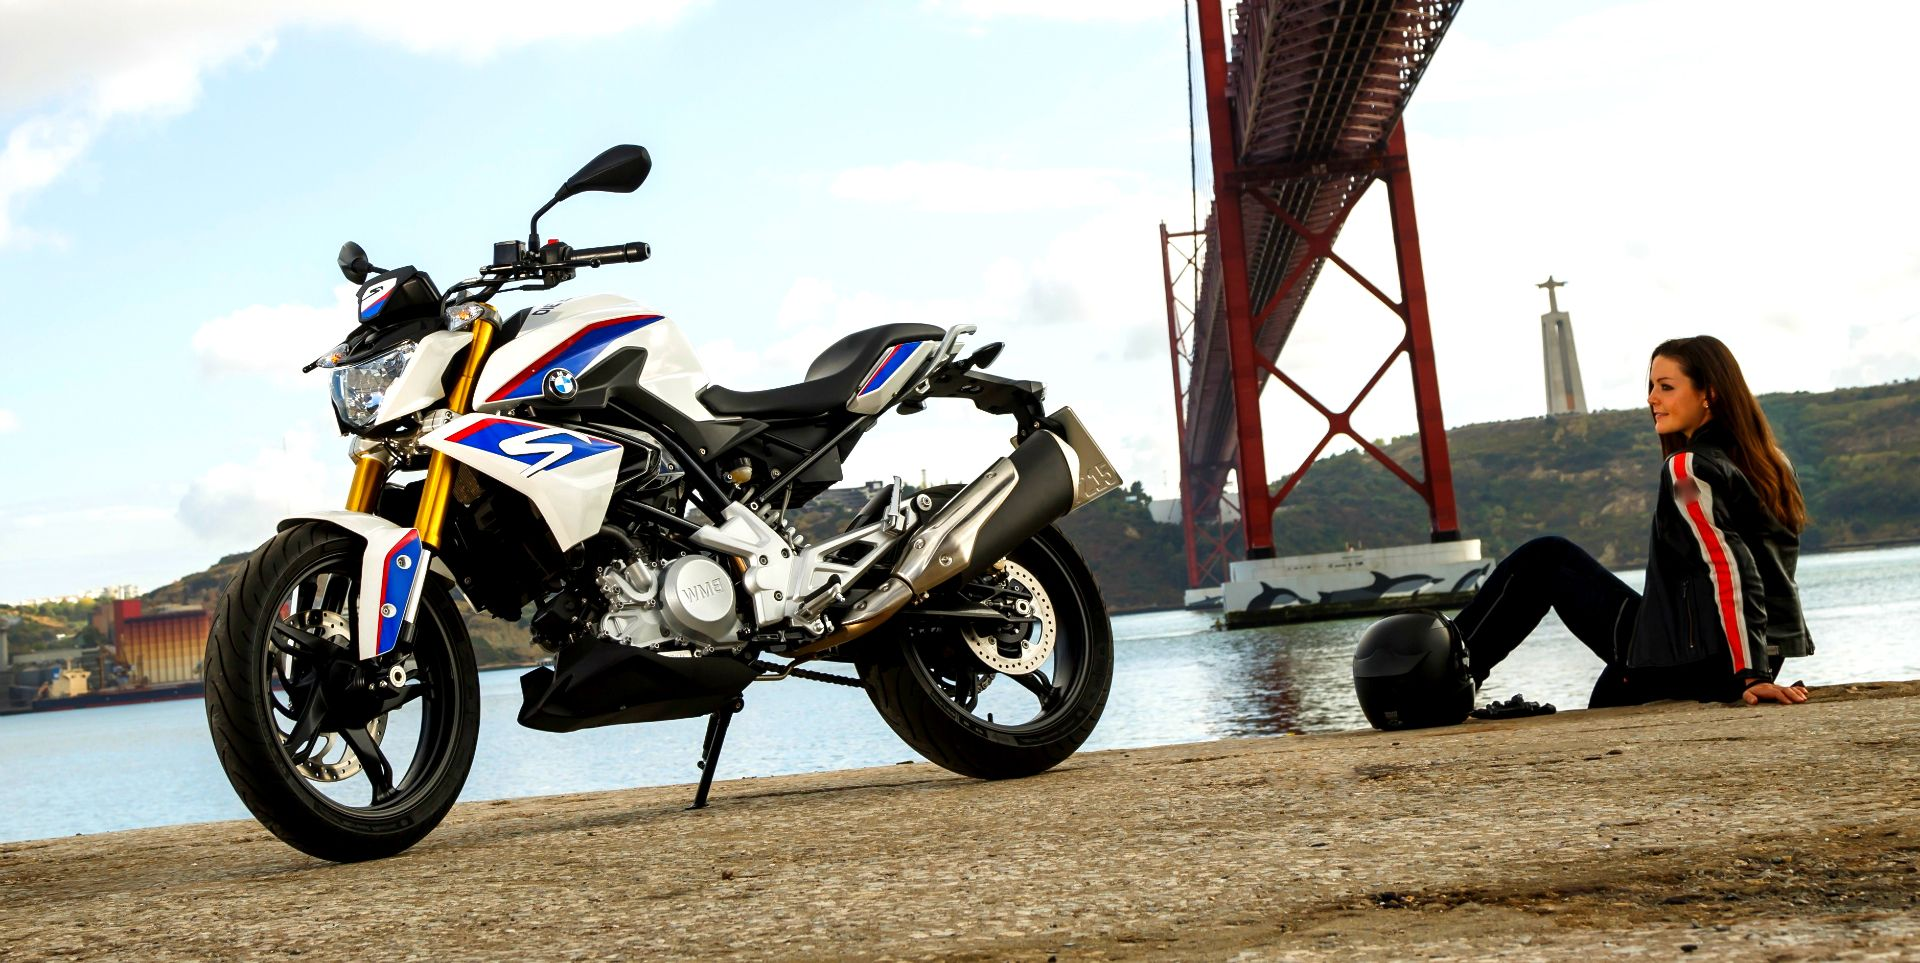 Bmw Bikes Wallpapers Free Download Hd Wallpaper 4 Us Wallpaper